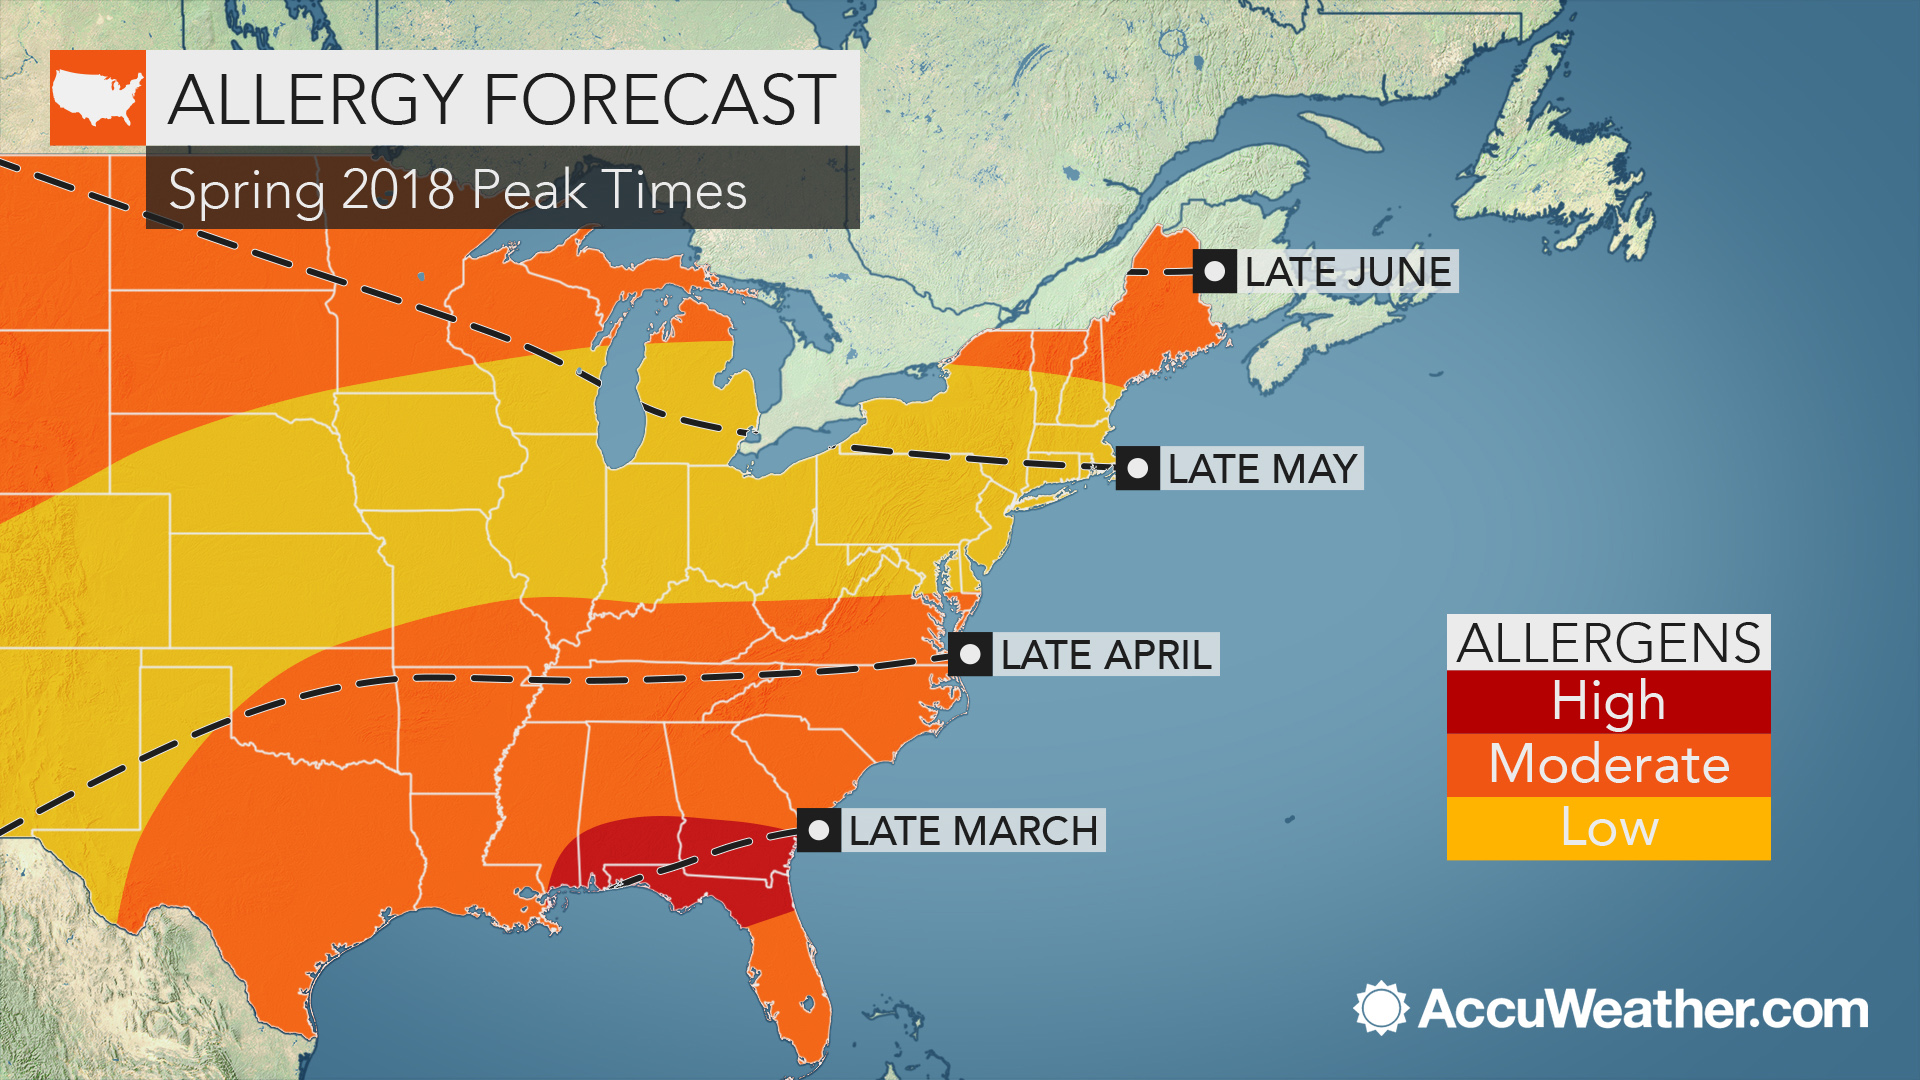 2018 spring allergy forecast: Pollen levels to soar early in